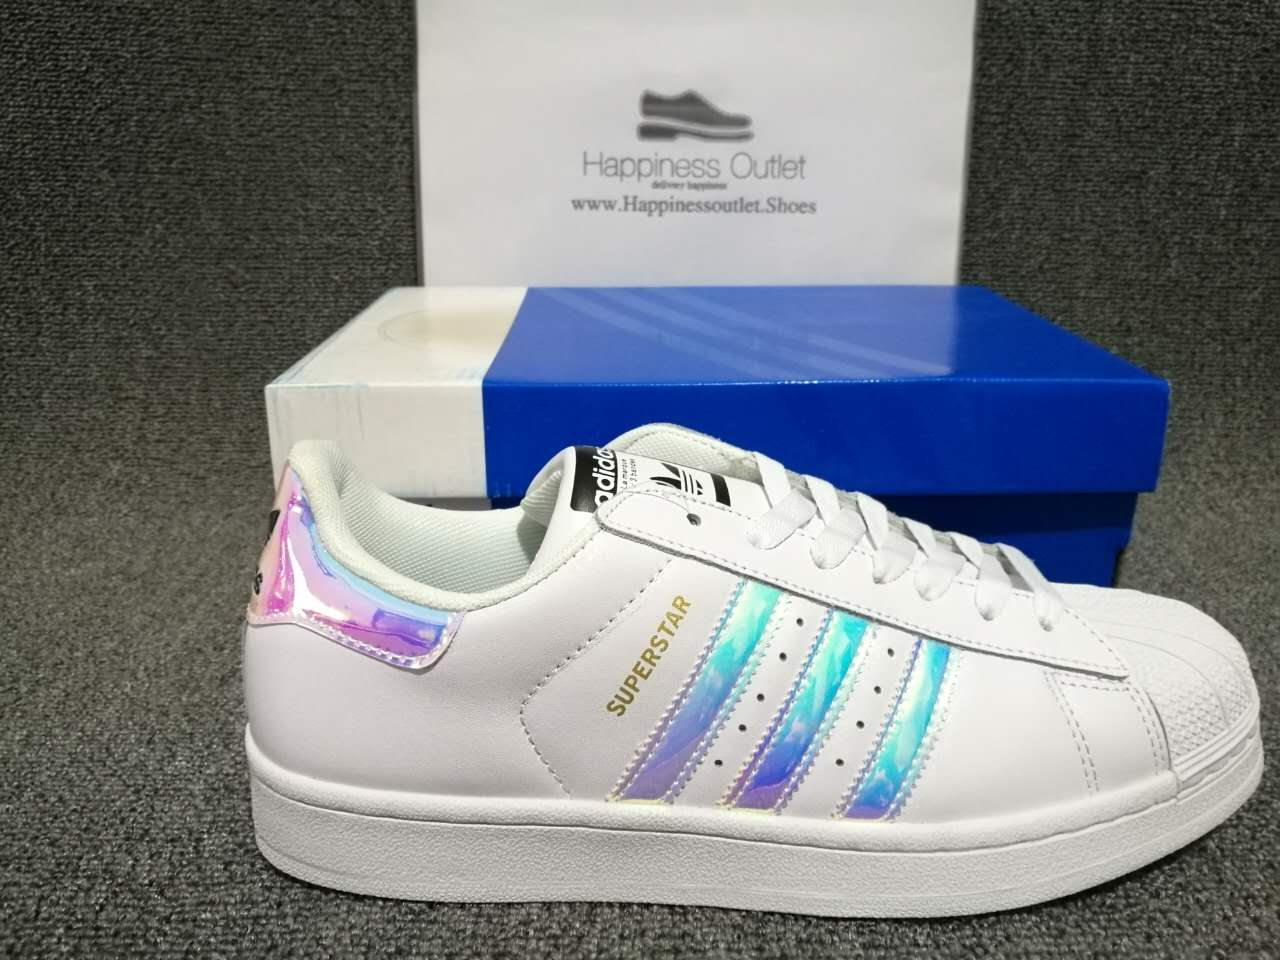 premium selection 6ea77 e58a3 How to Spot Fake Adidas Superstar 80 s